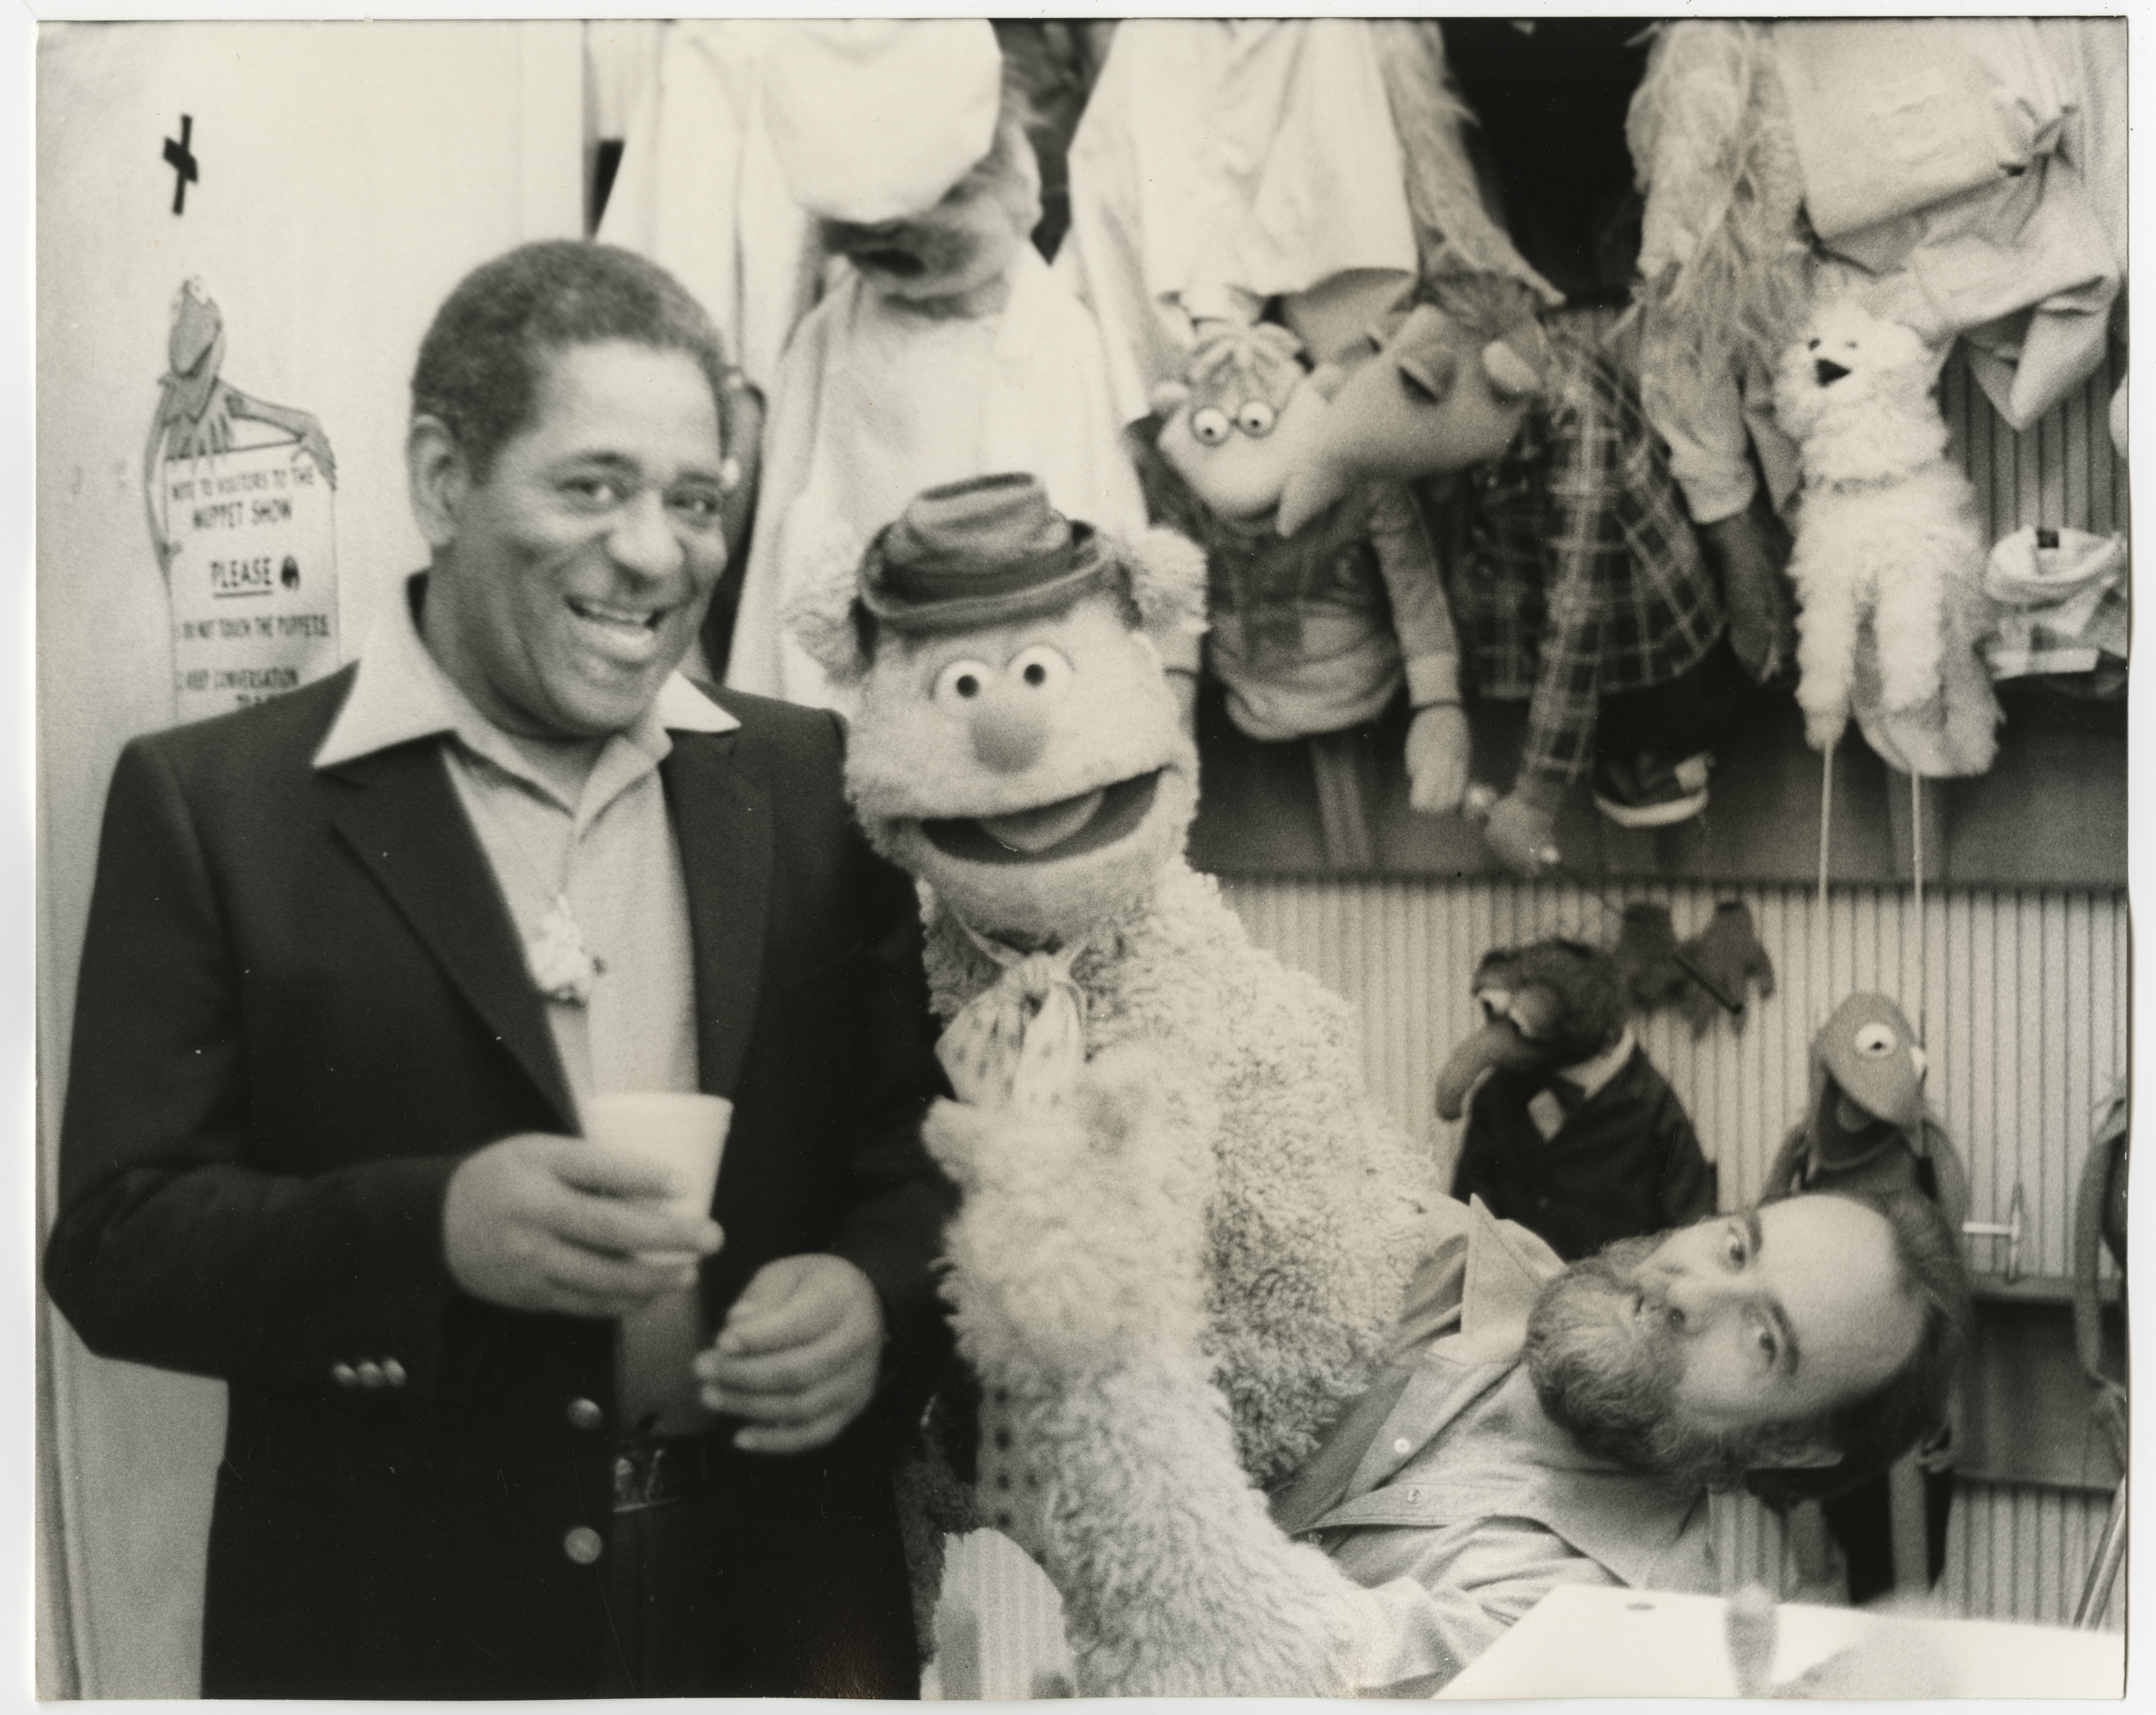 A black and white photograph of Dizzy Gillespie posing with Fozzie Bear and Jim Henson backstage at the Muppet Show. Henson is operating the puppet.